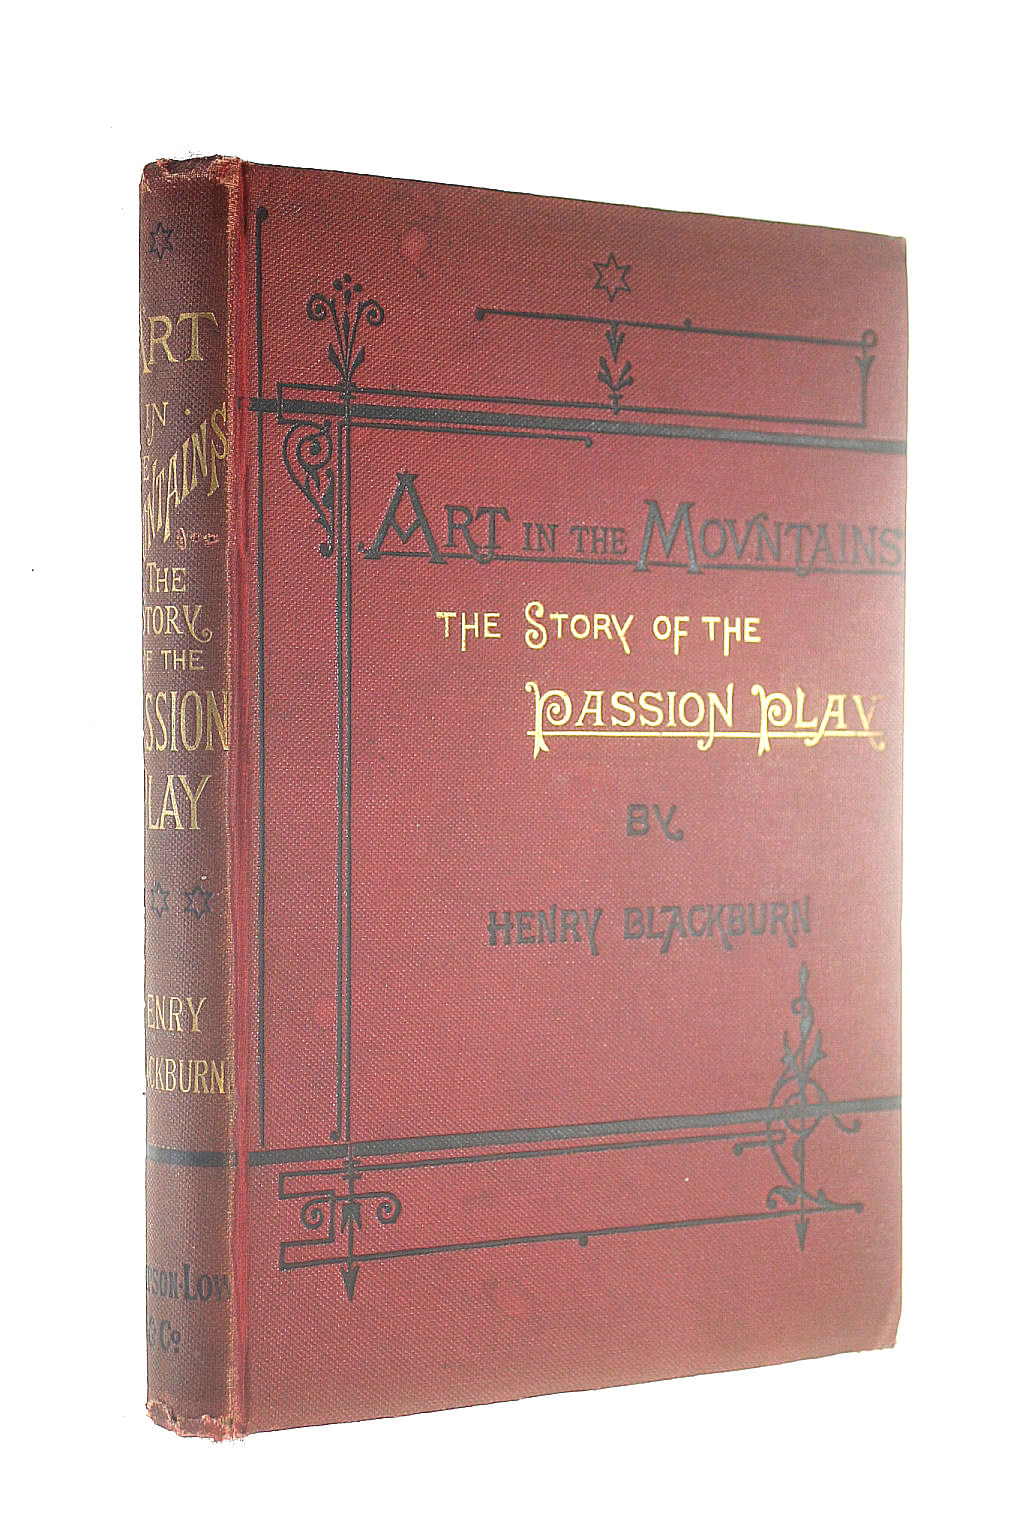 Image for Art in the Mountains: the Story of the Passion Play. by Henry Blackburn